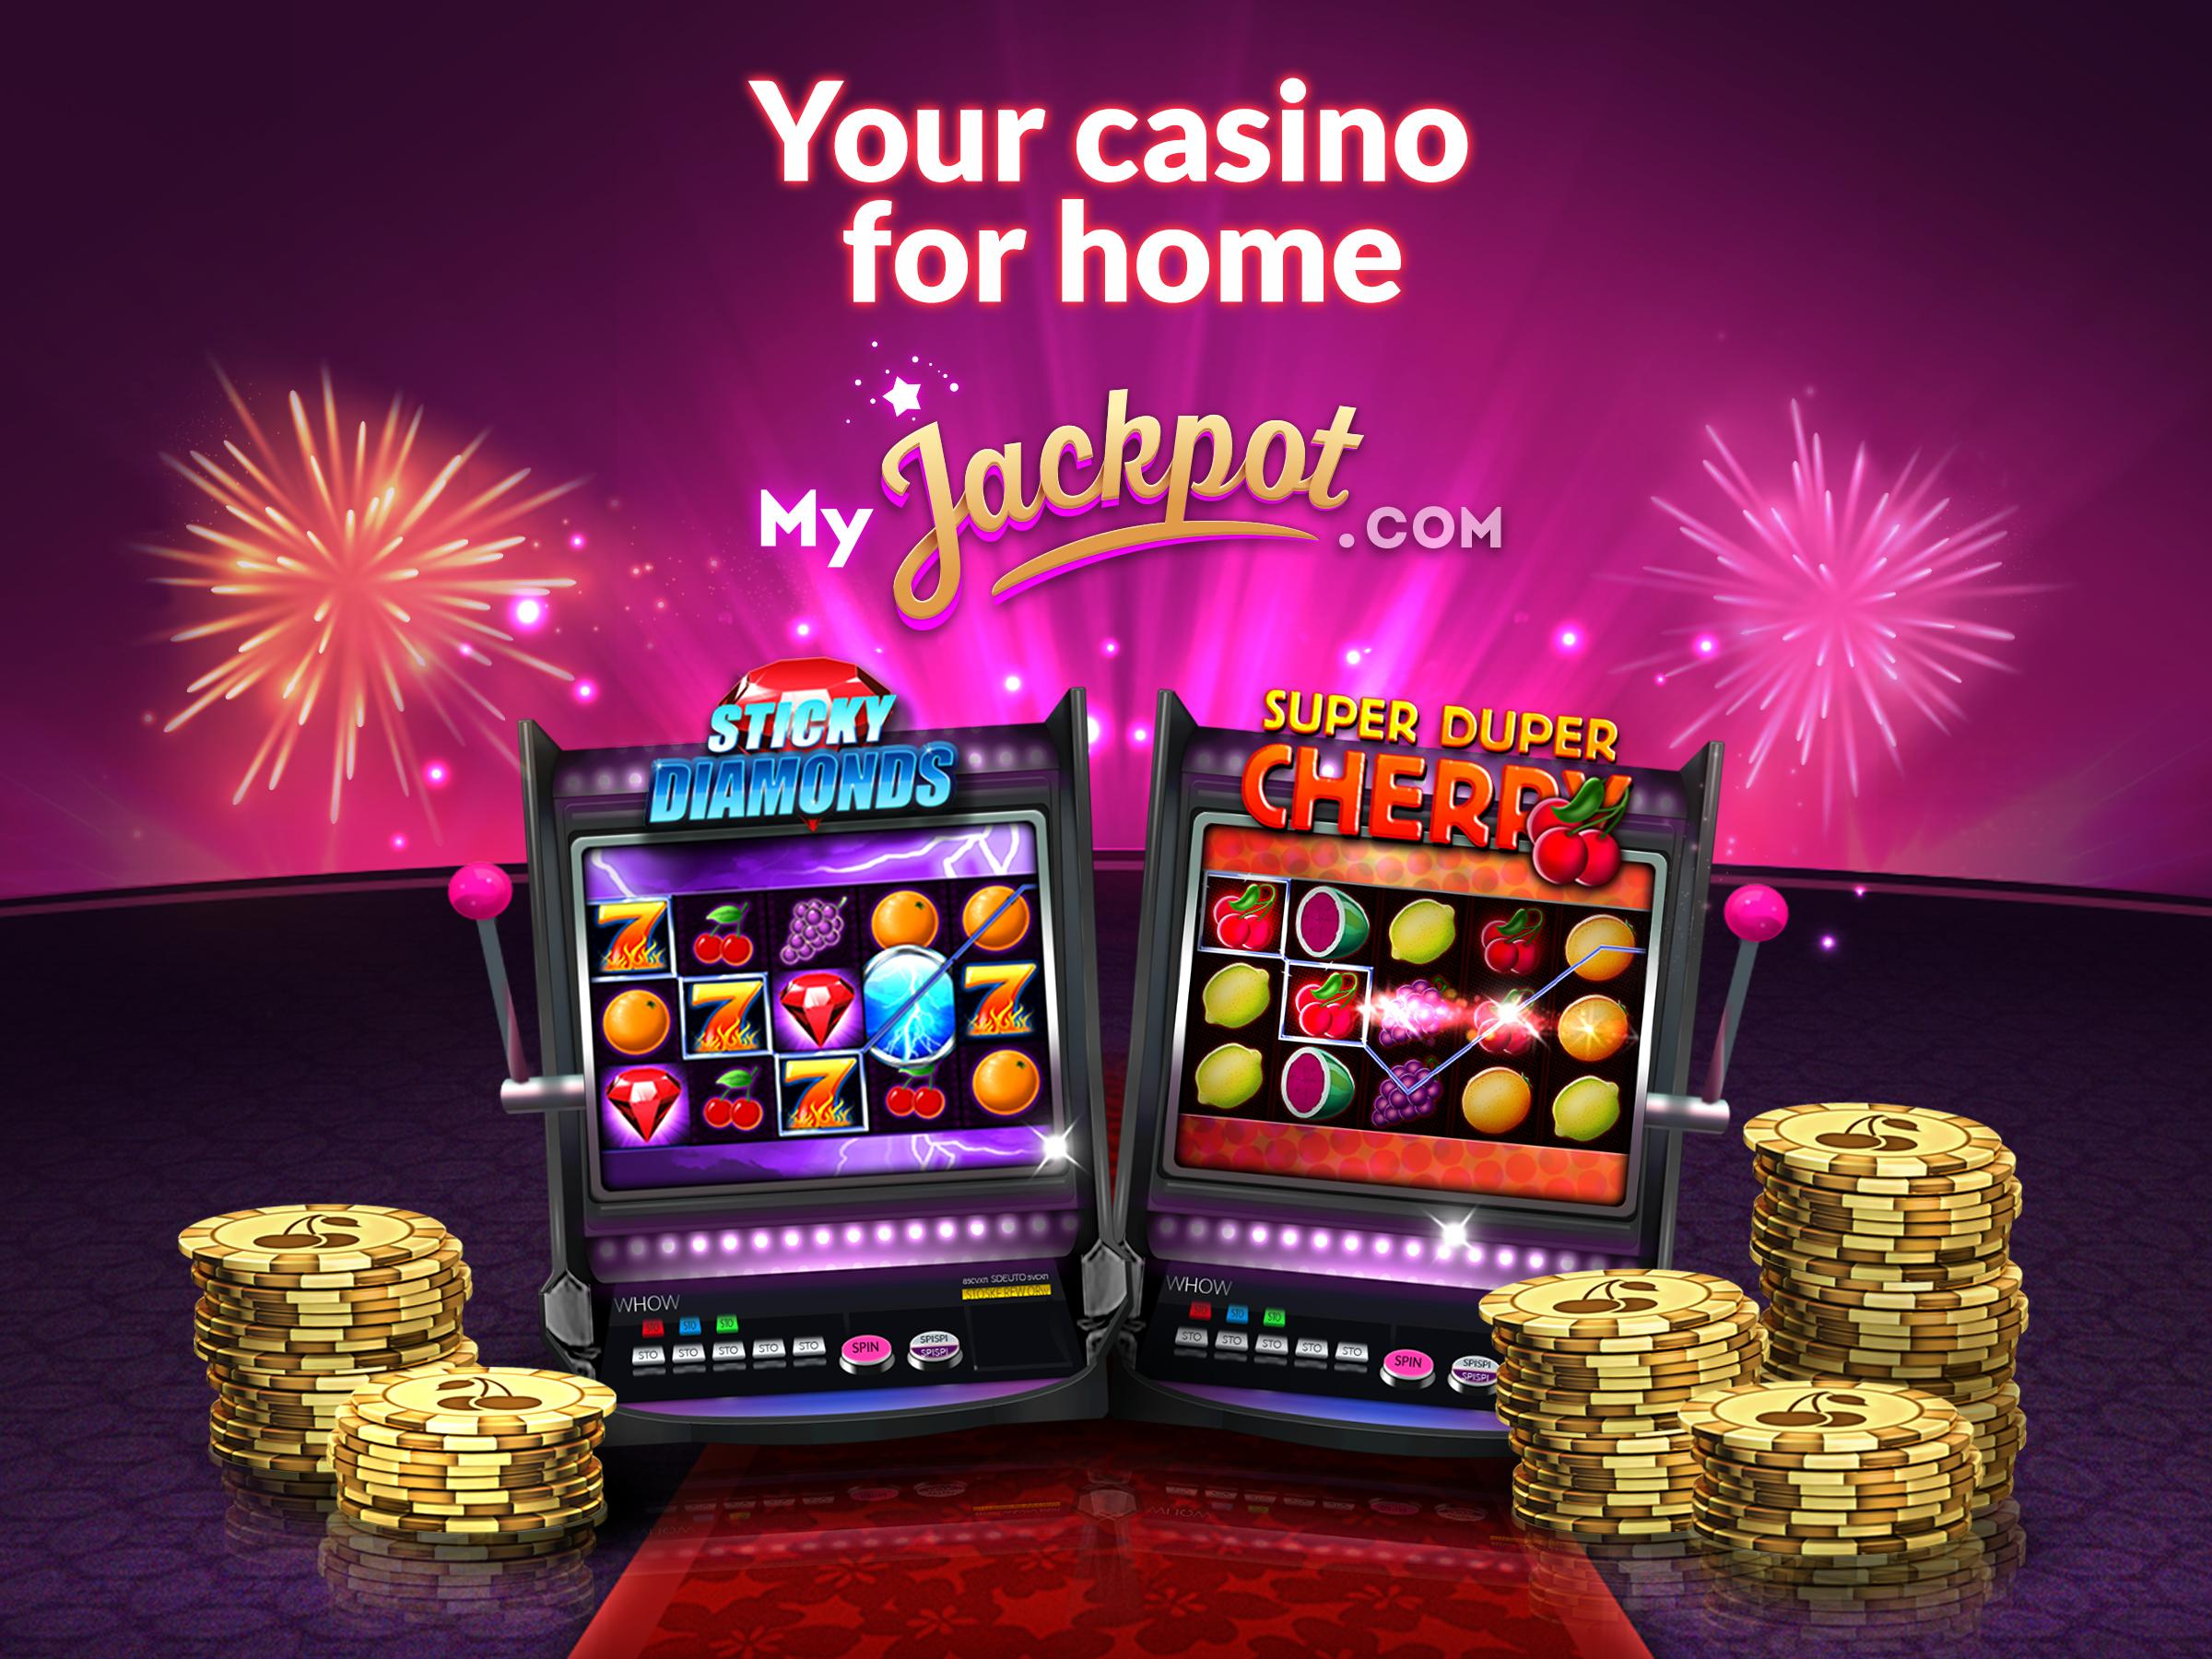 Jackpot Casino for Android - APK Download